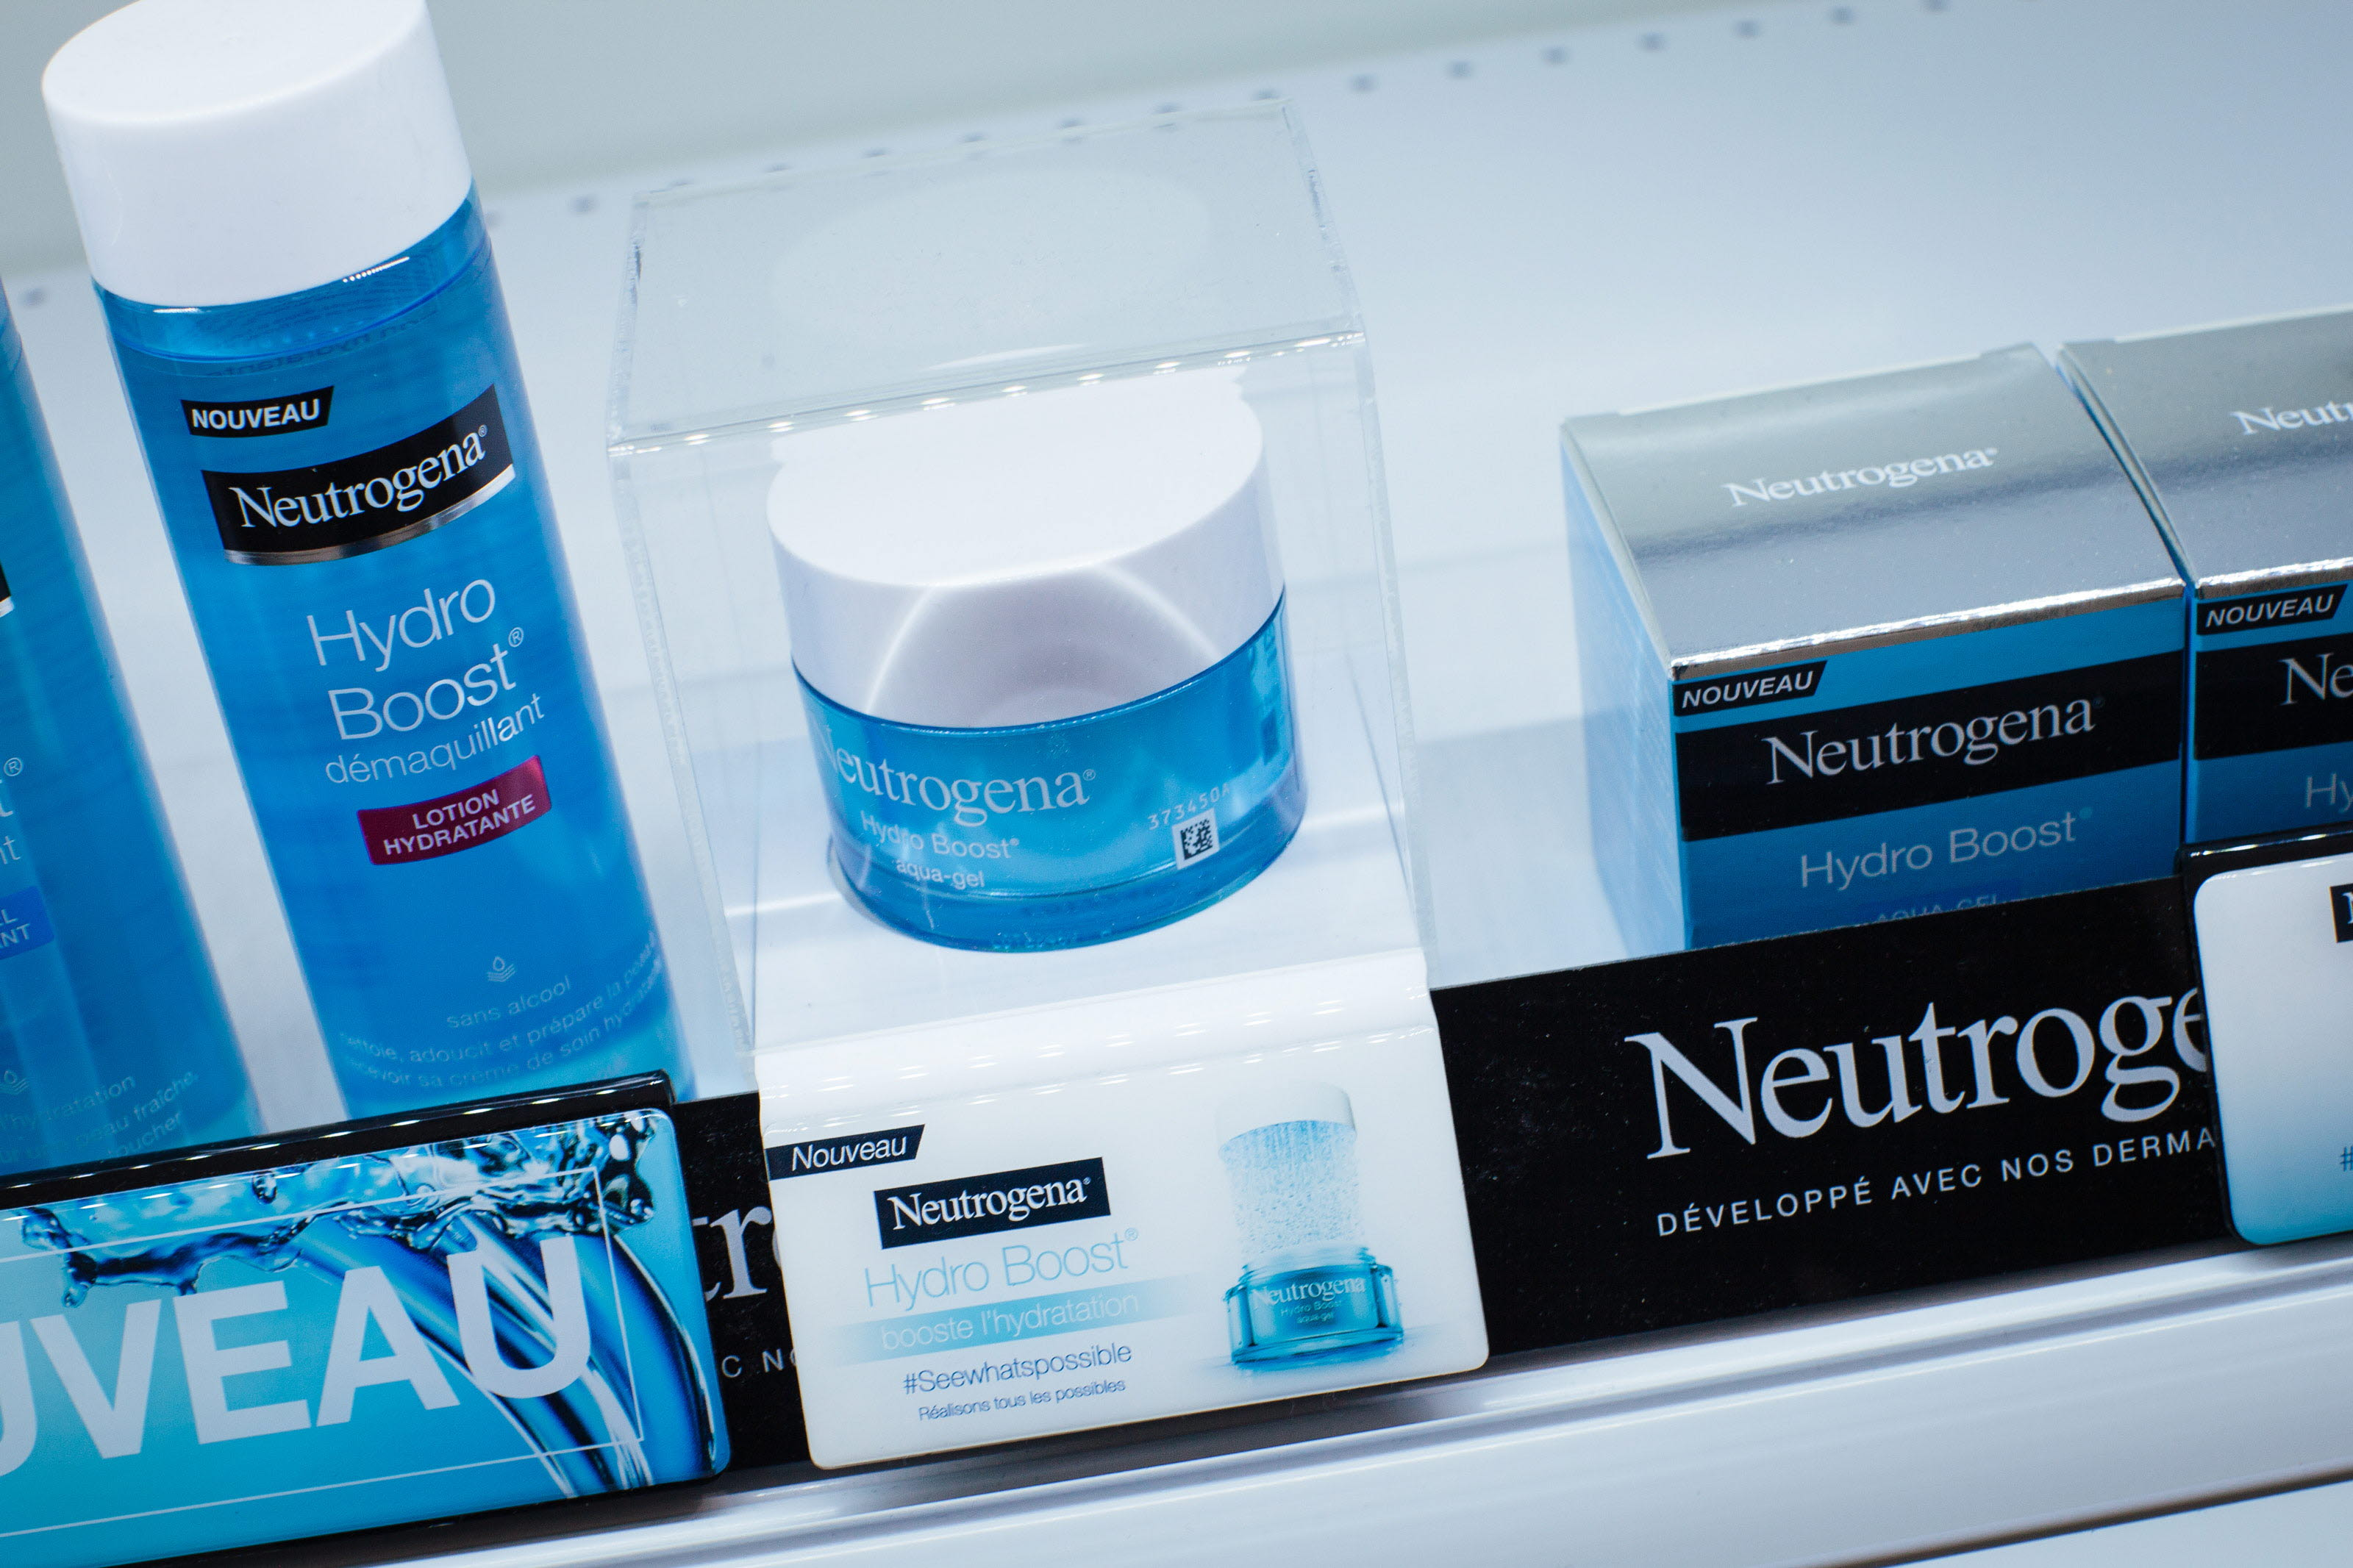 Neutrogena_Brandline_Shelfliner_HL-Display_0578.jpg